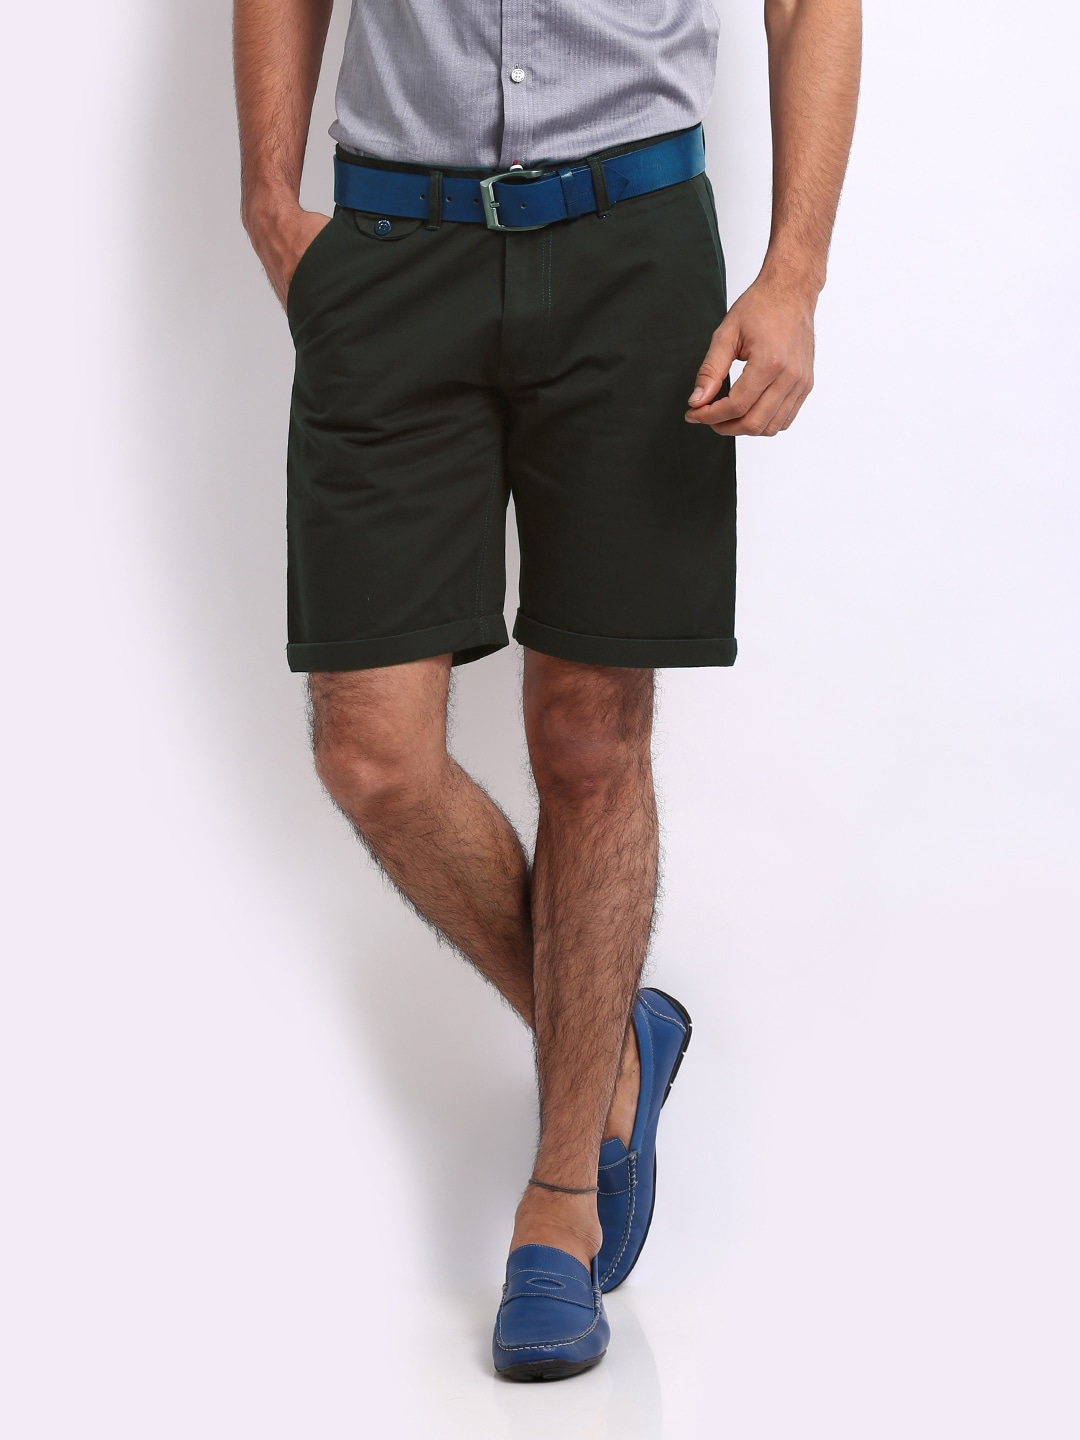 Find your adidas Men - Green - Shorts - Clothing at bloggeri.tk All styles and colours available in the official adidas online store.